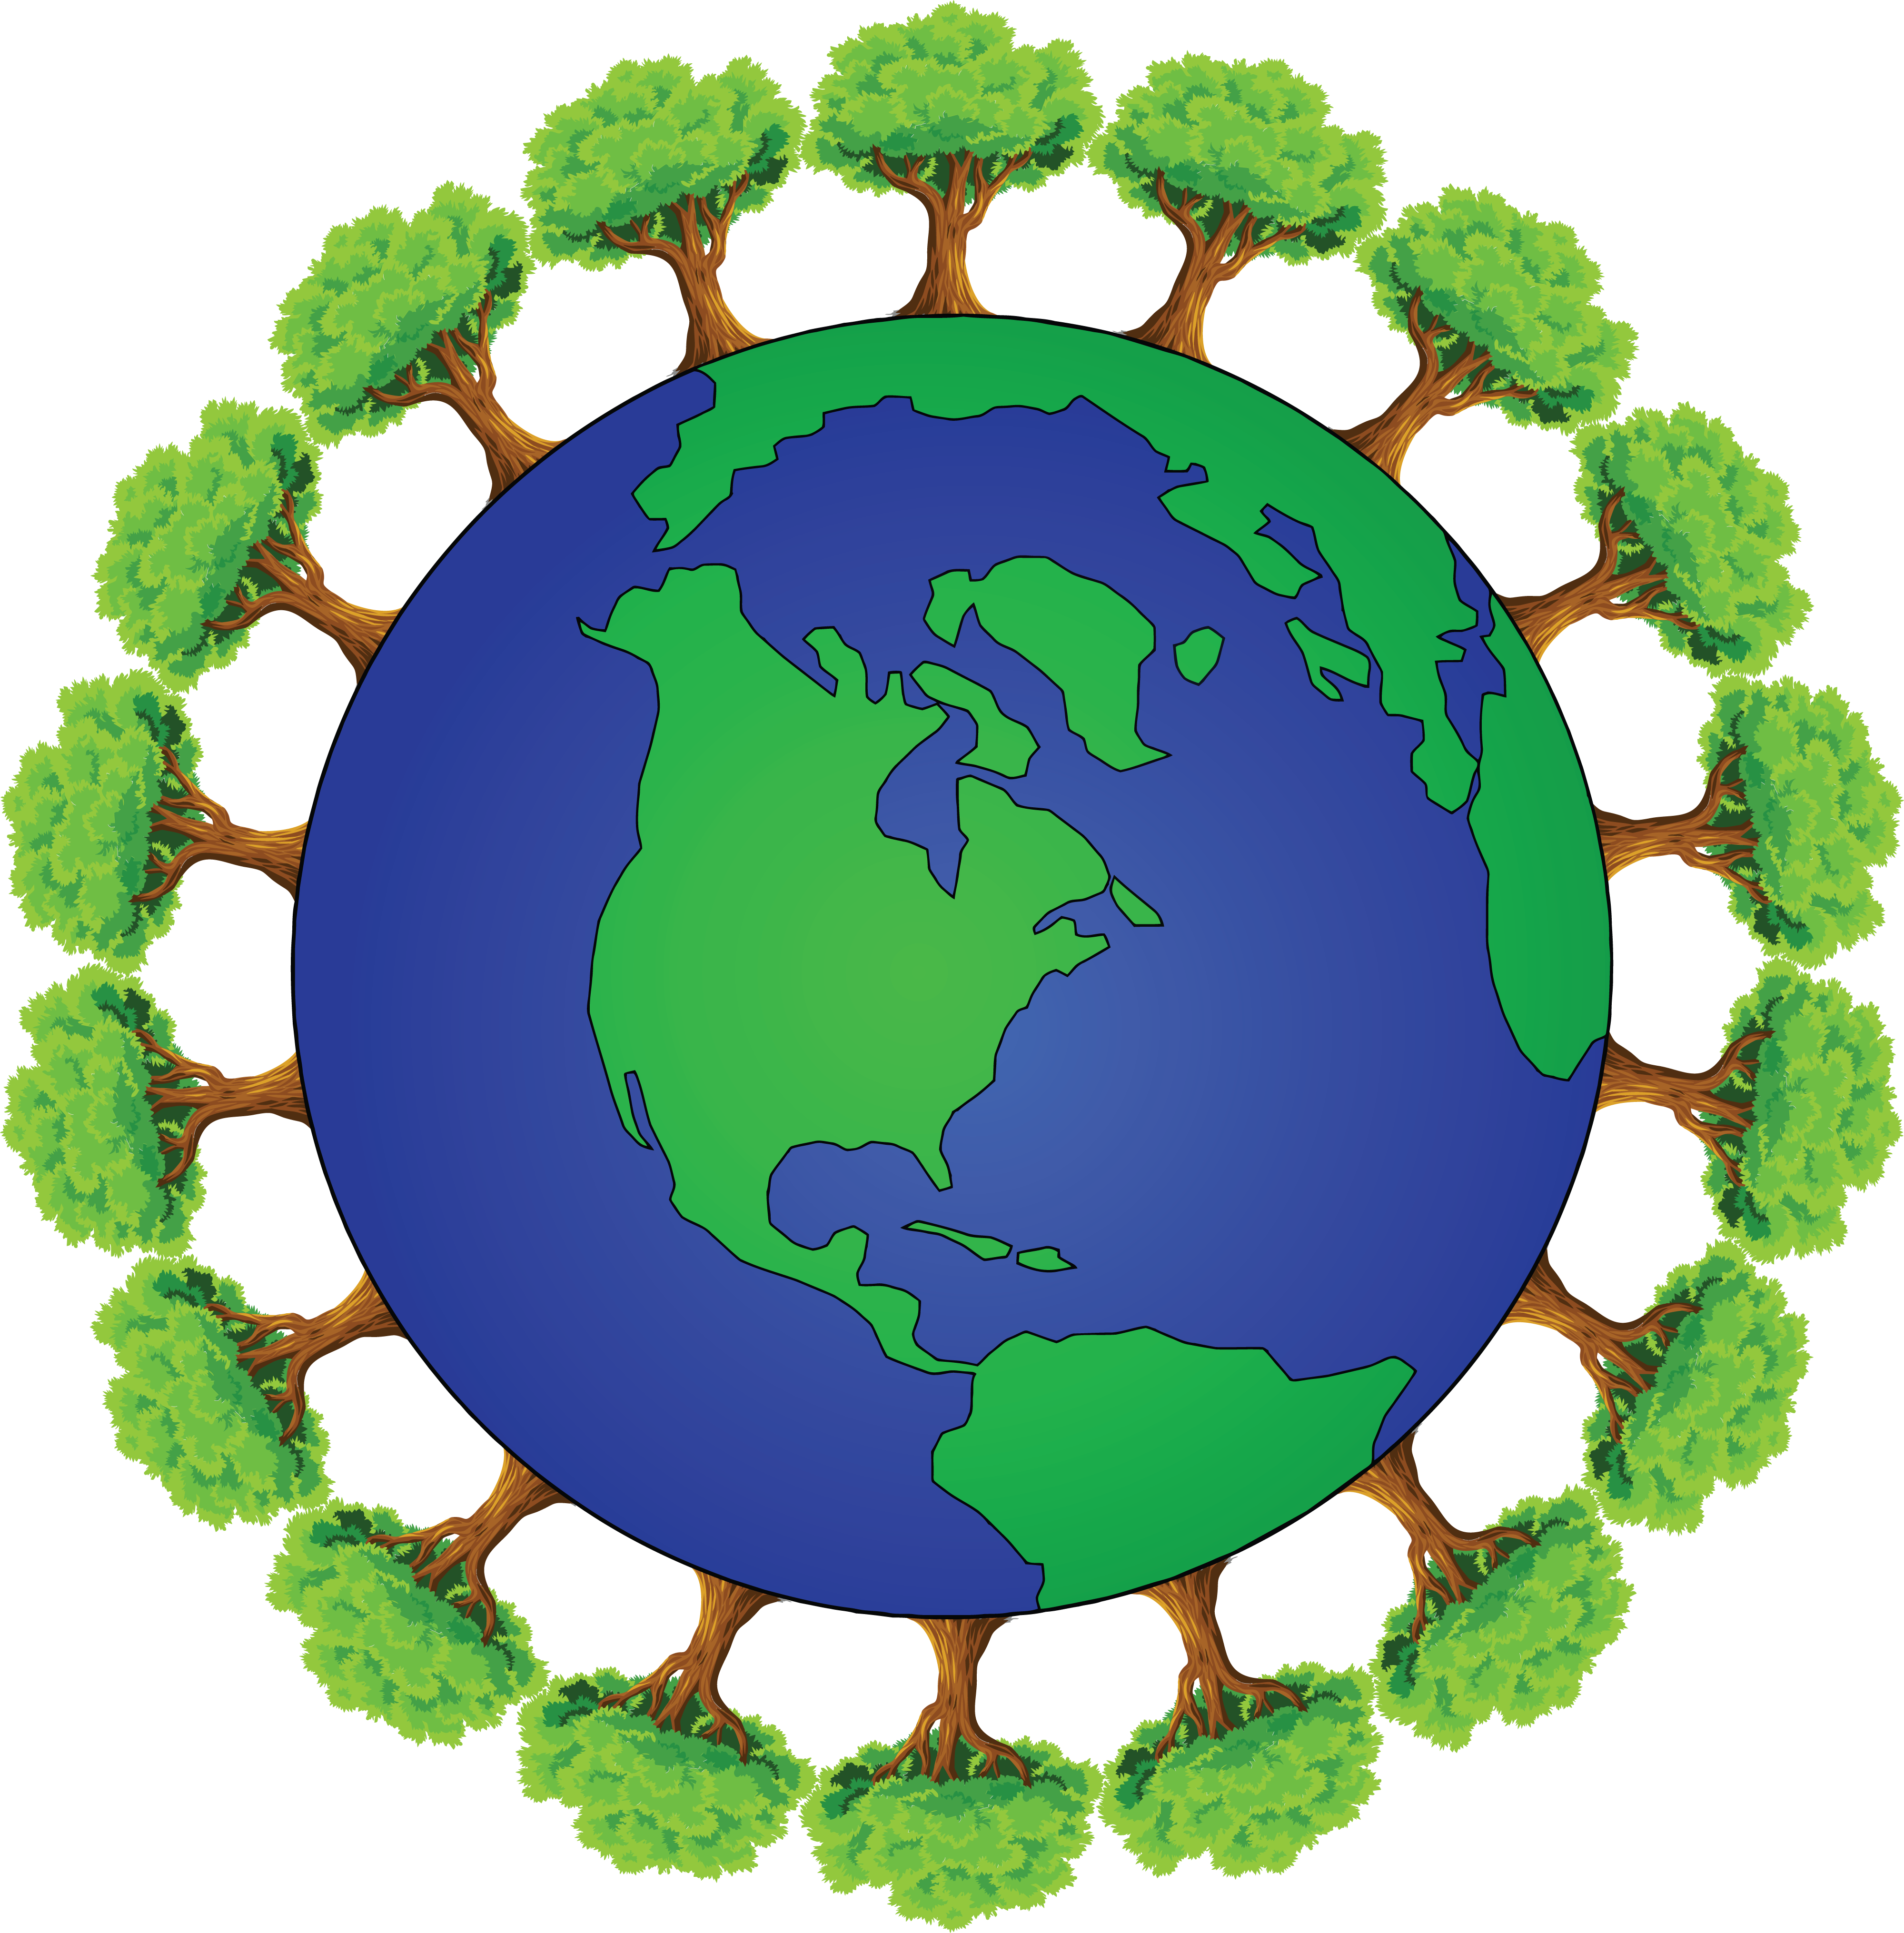 Globe clipart ancient. Planet earth at getdrawings